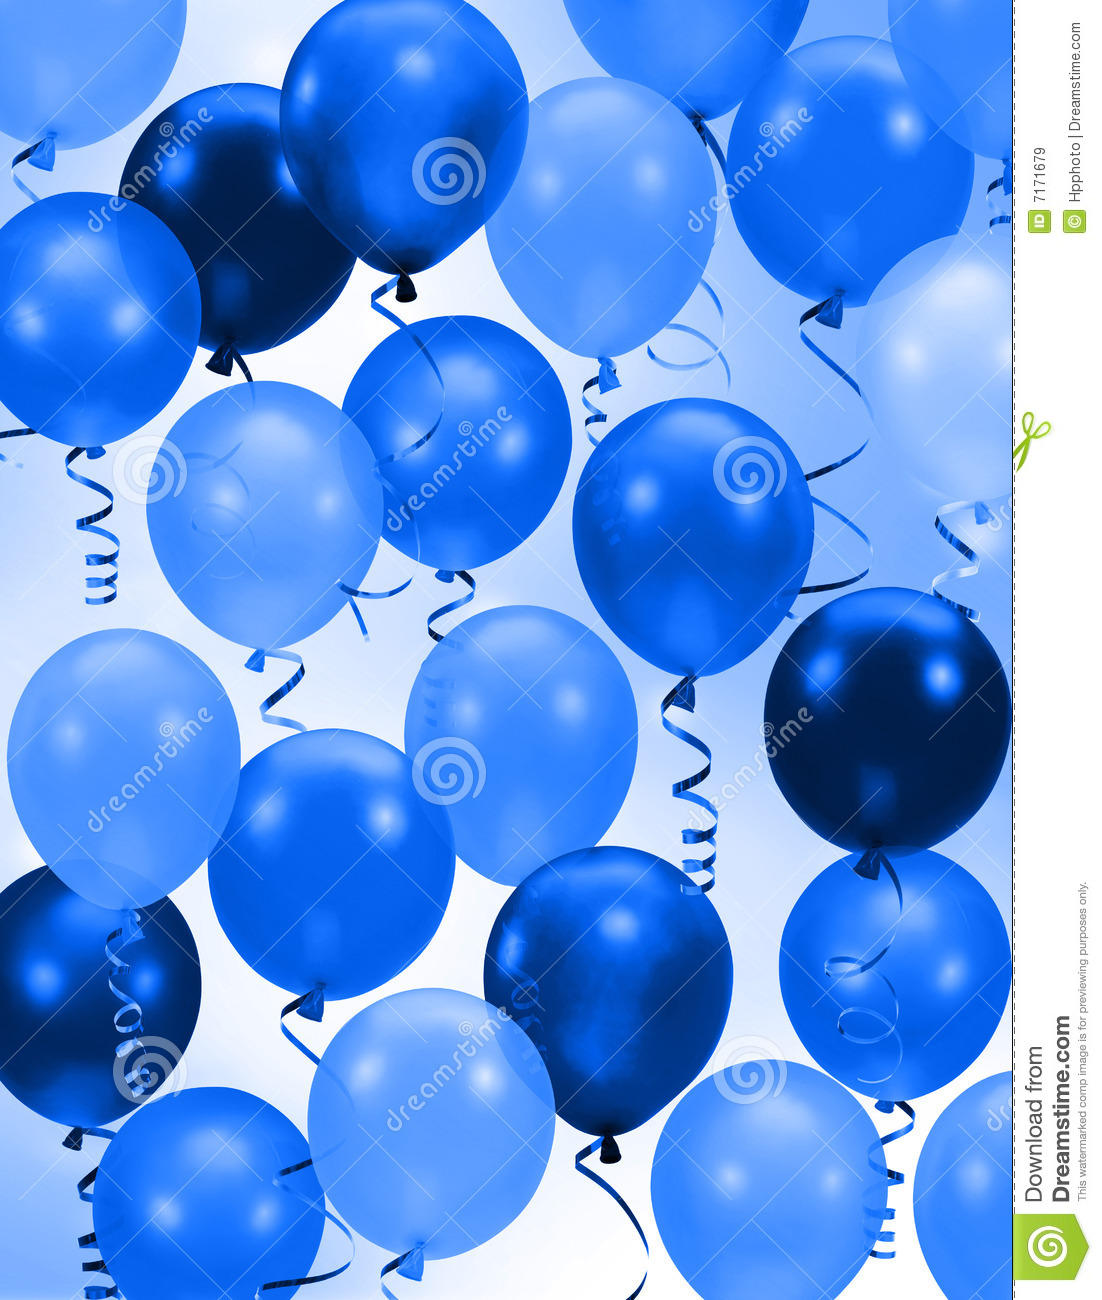 blue birthday wallpaper ; party-blue-balloons-background-7171679